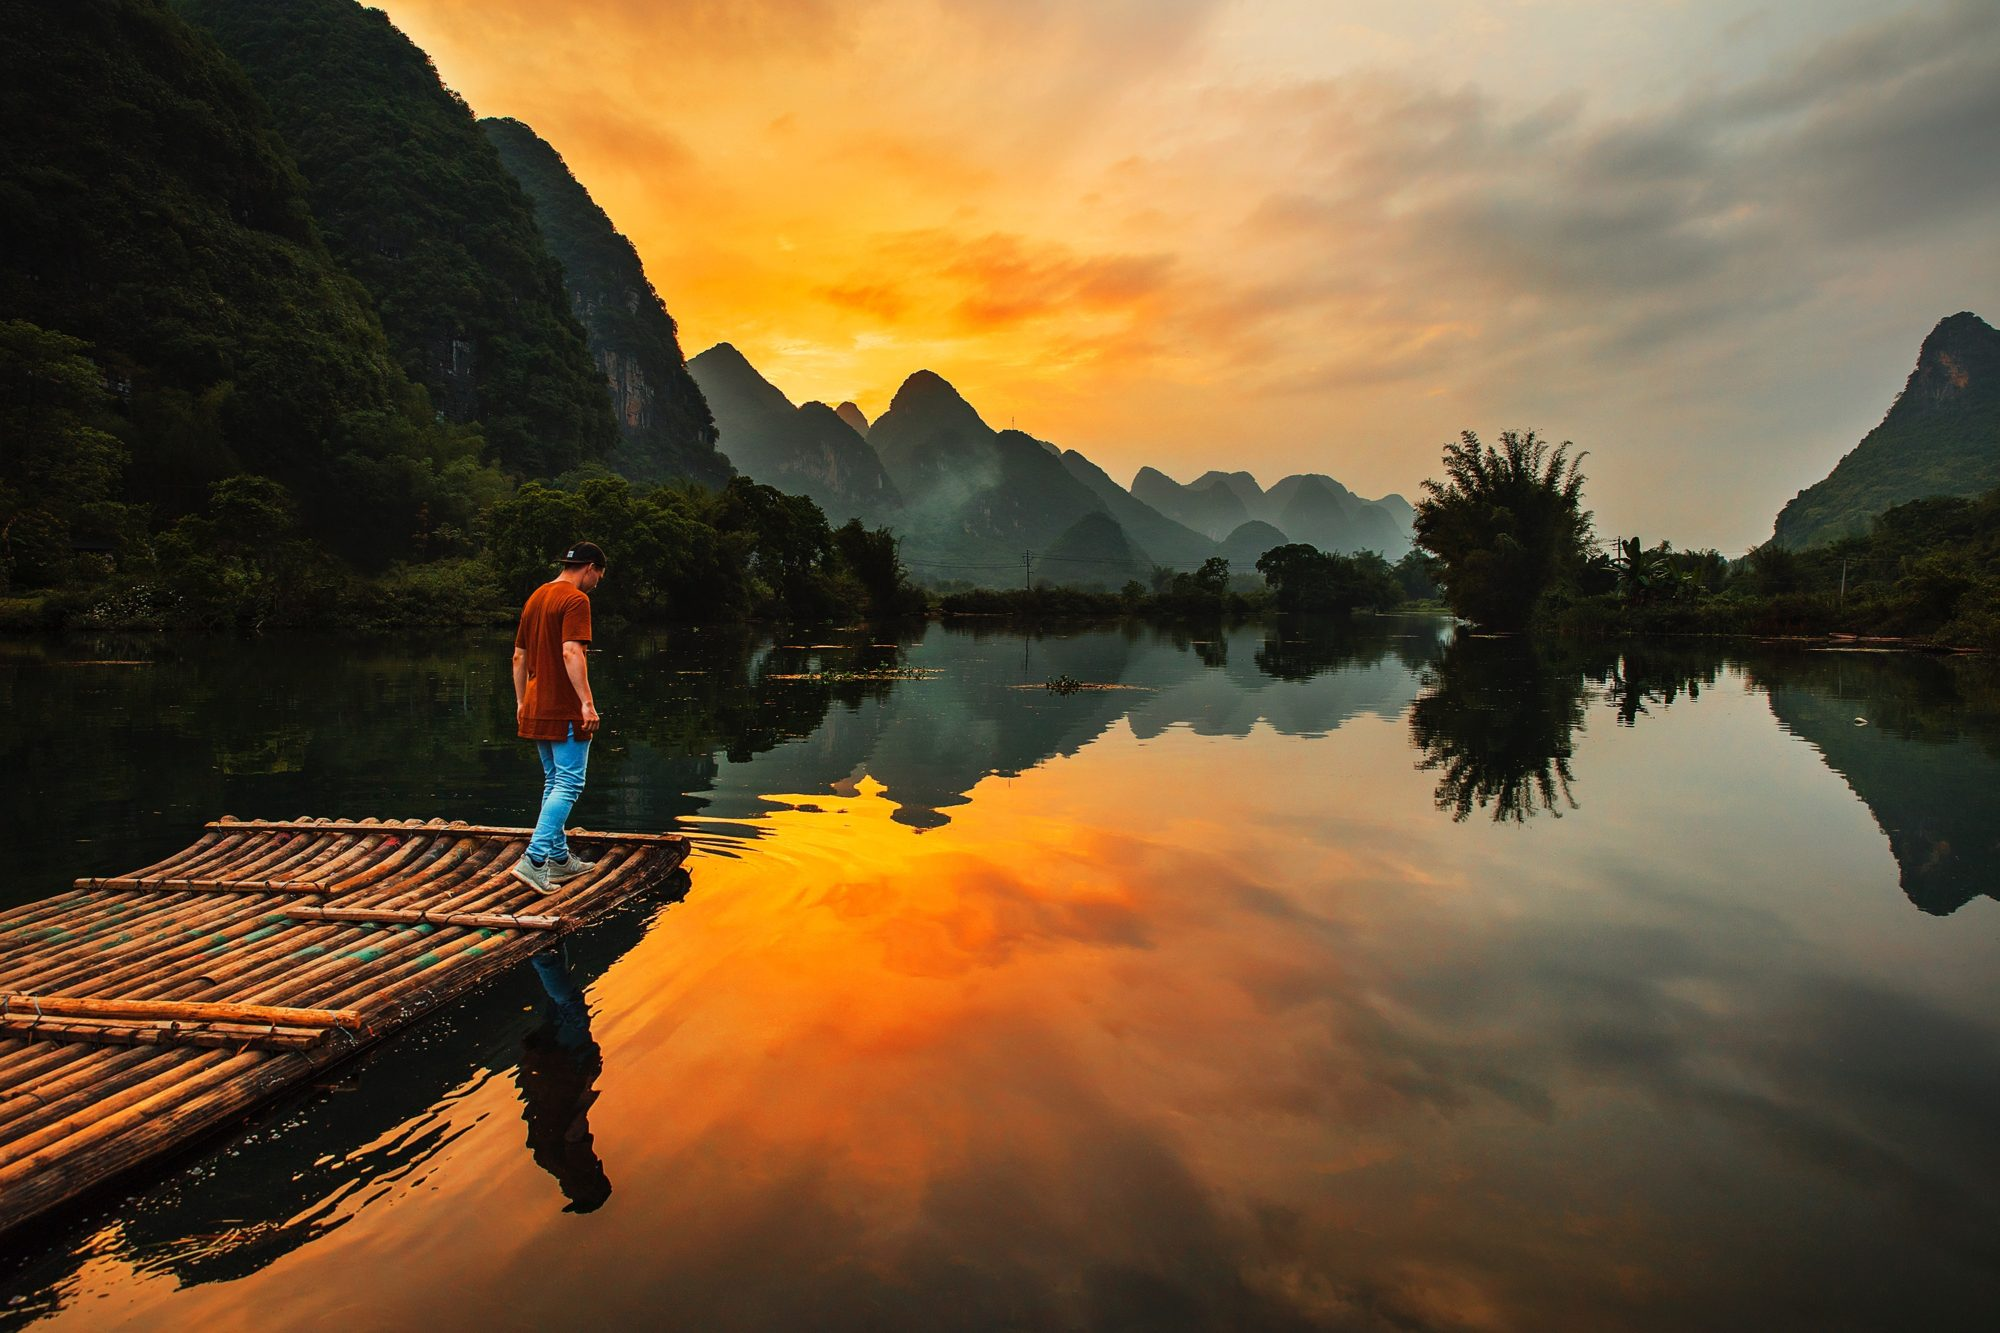 Yulong River, Guilin, China